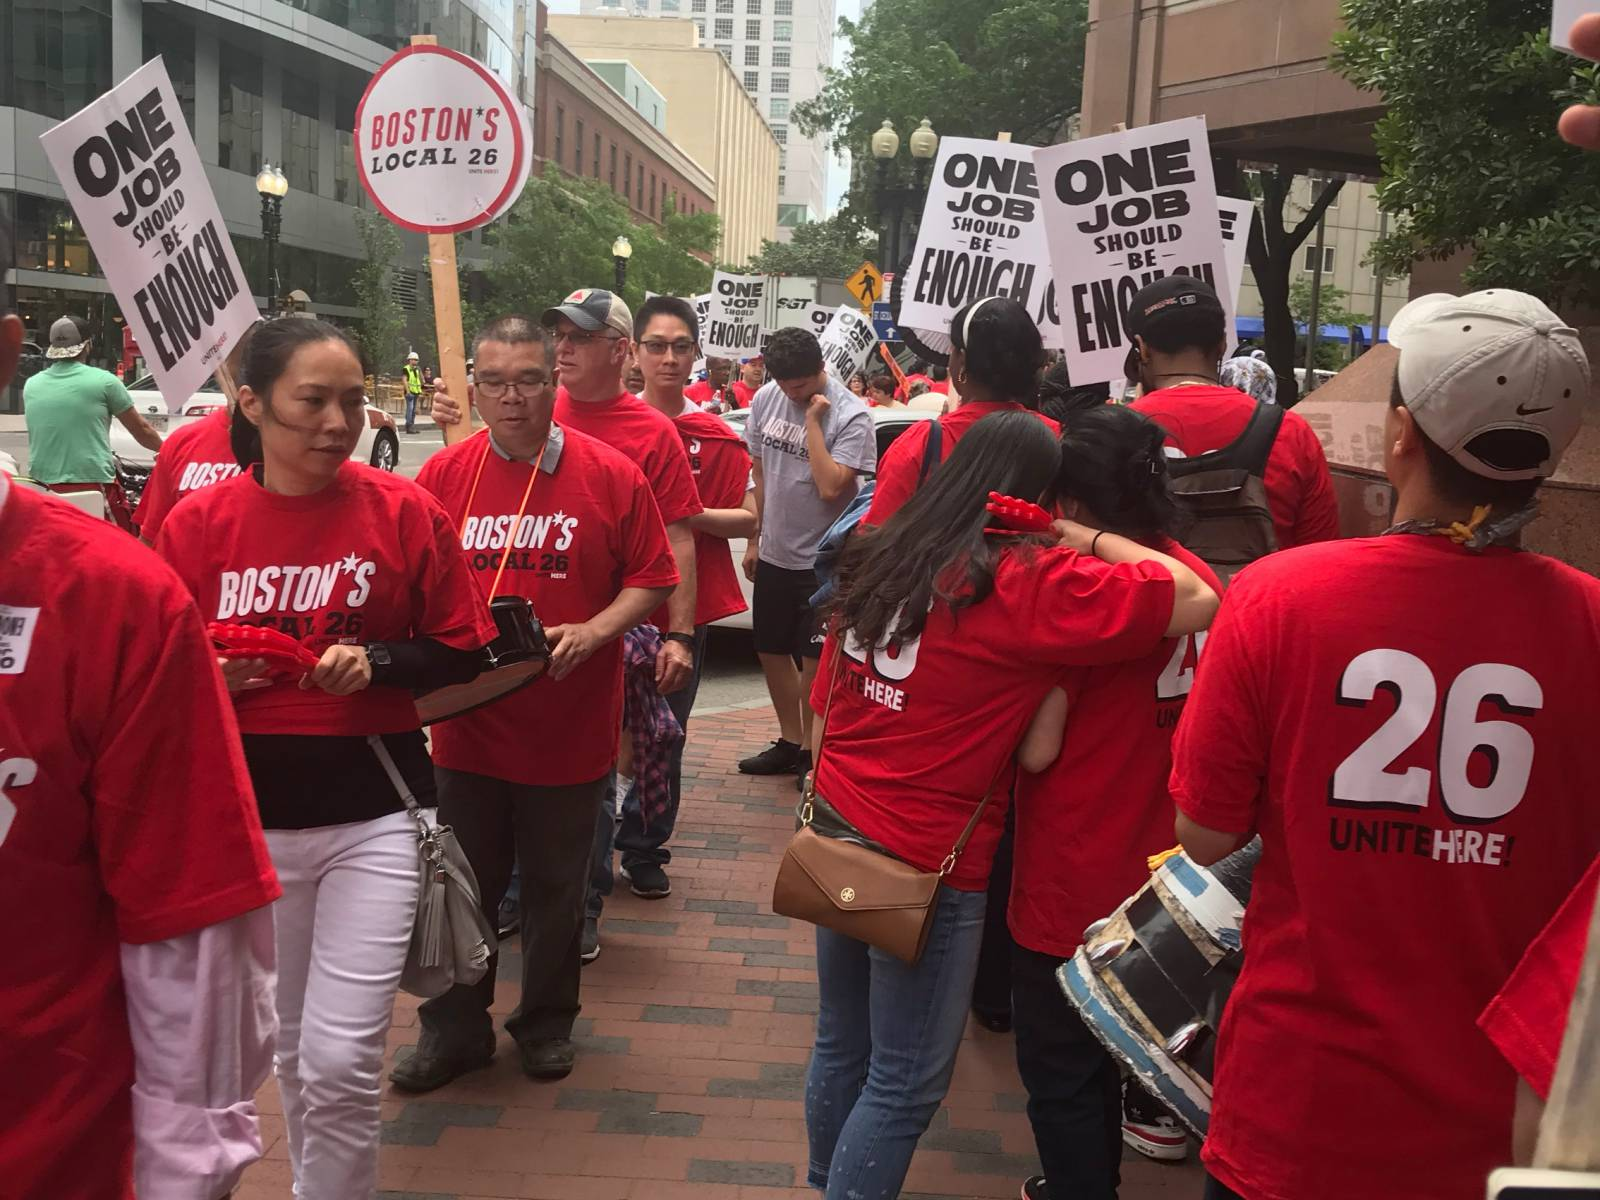 Huge picket line against Marriott in Boston